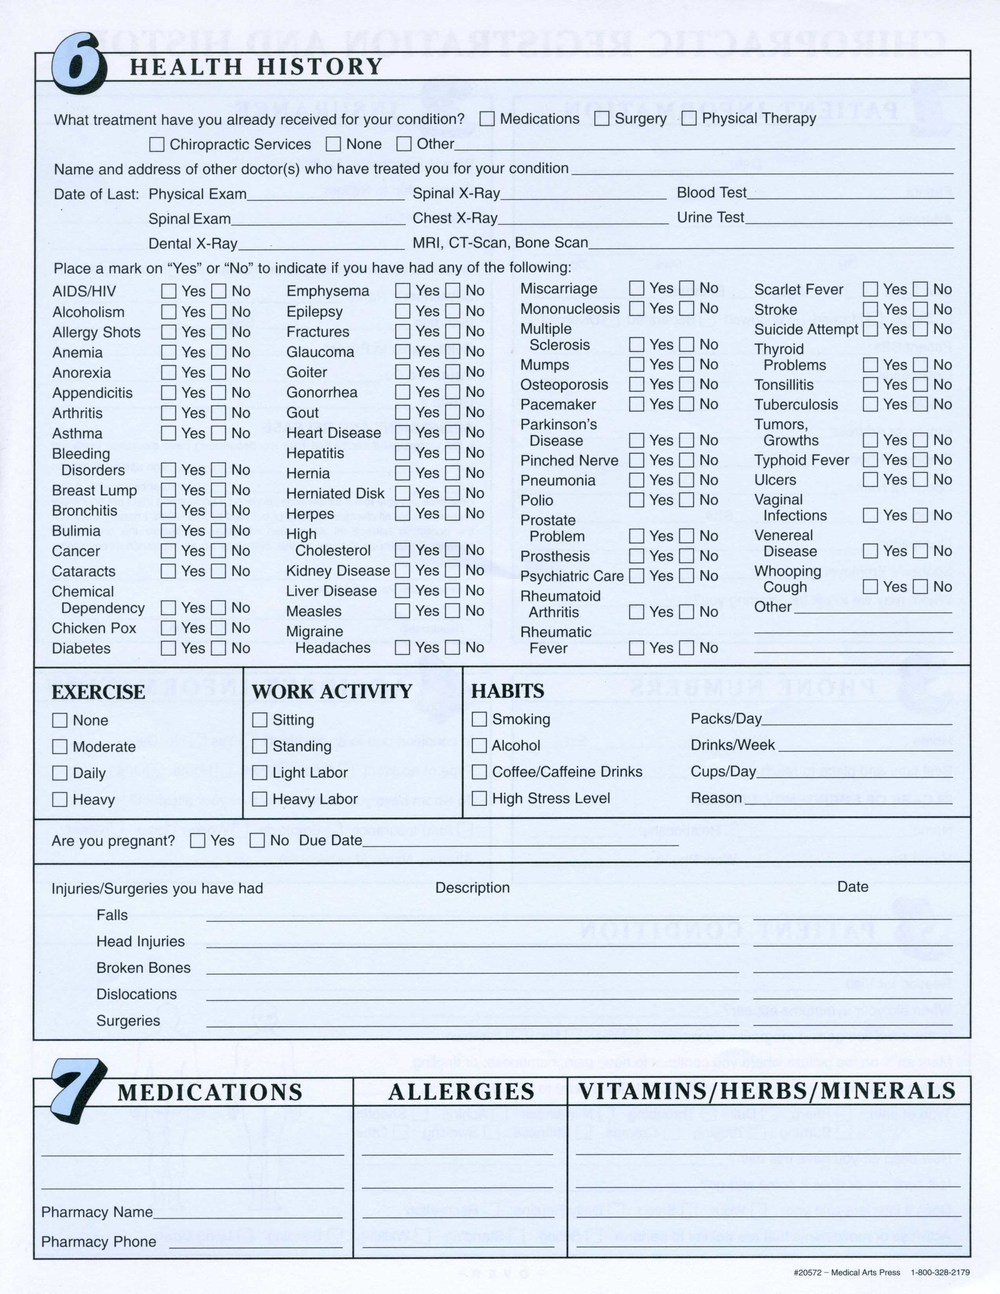 shields new patient form 2 final.jpg